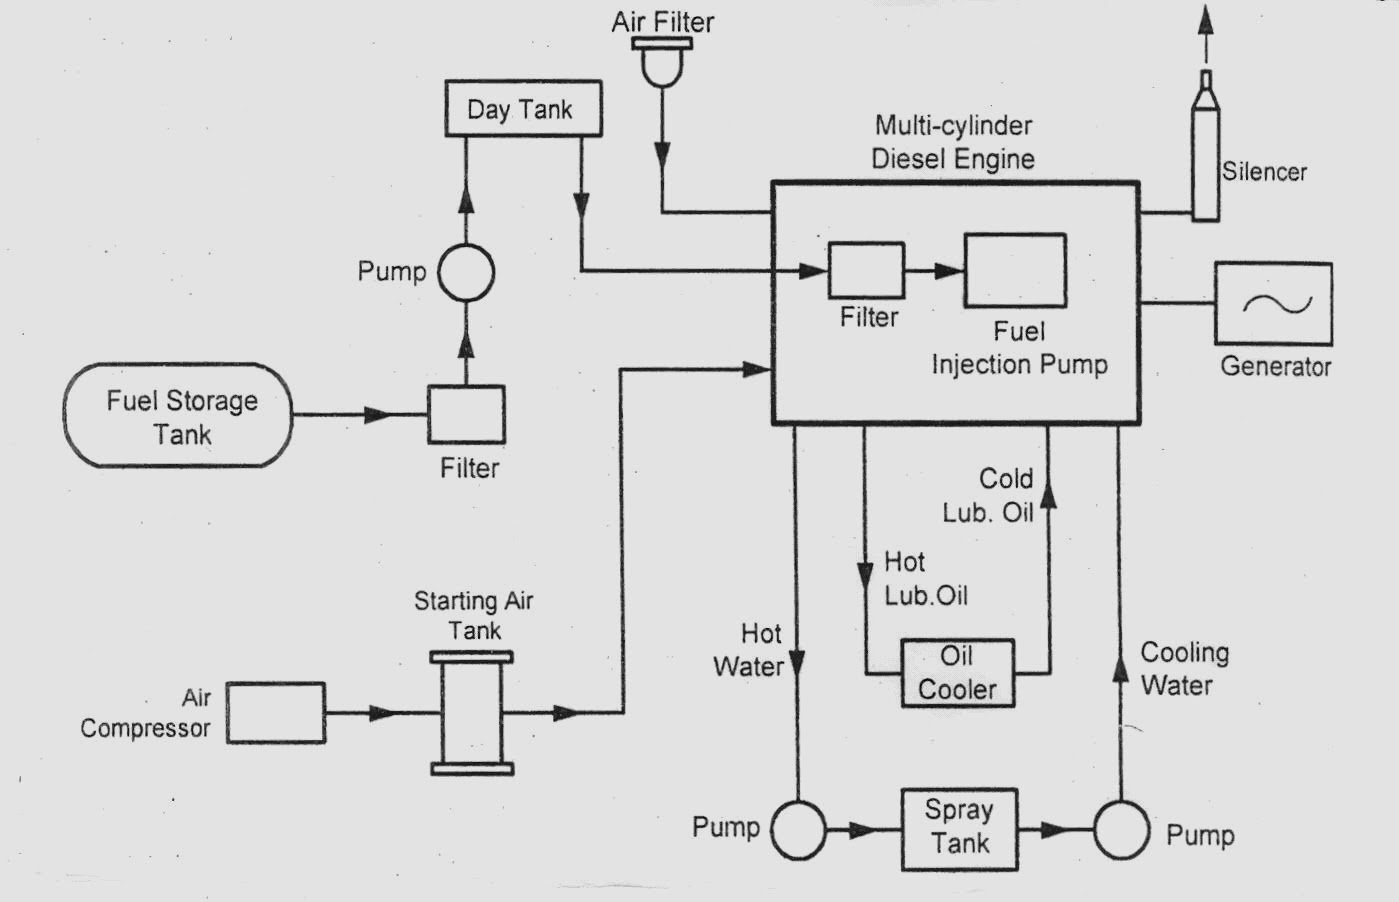 diesel engine power plant block diagram